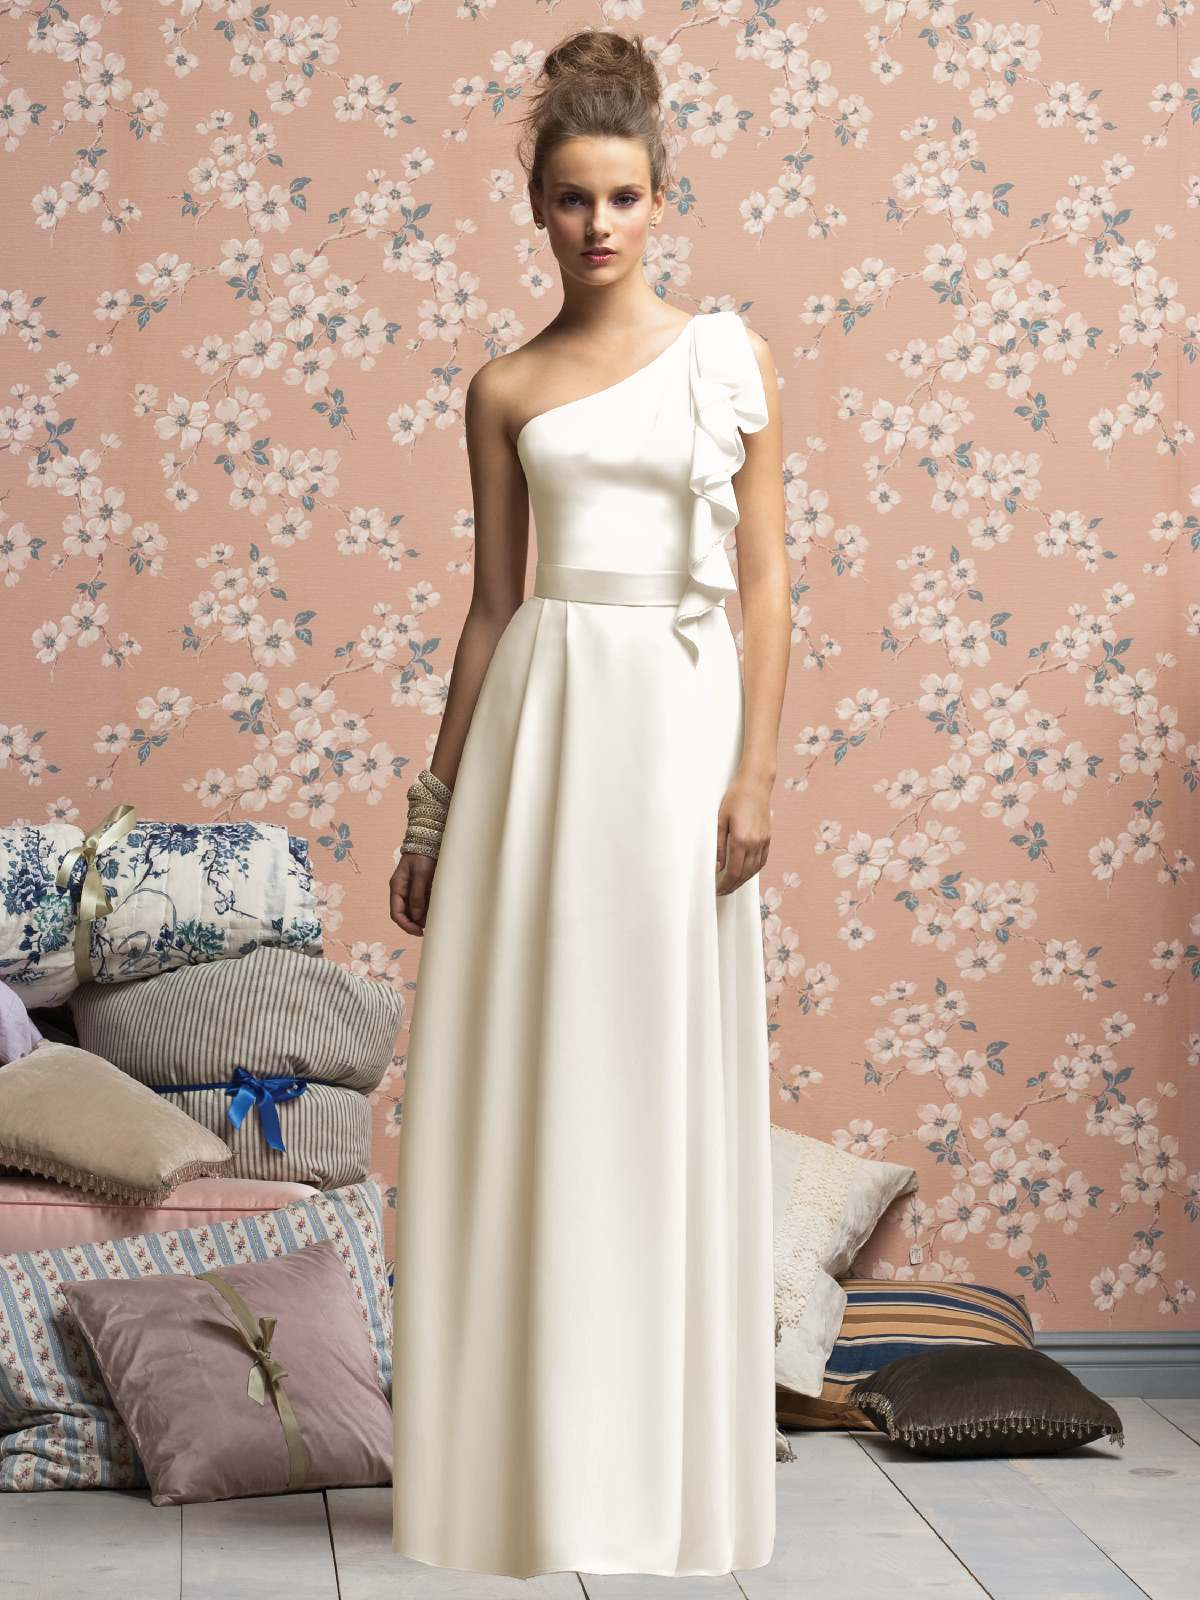 White A Line One Shoulder Zipper Full Length Prom Dresses With Drapes